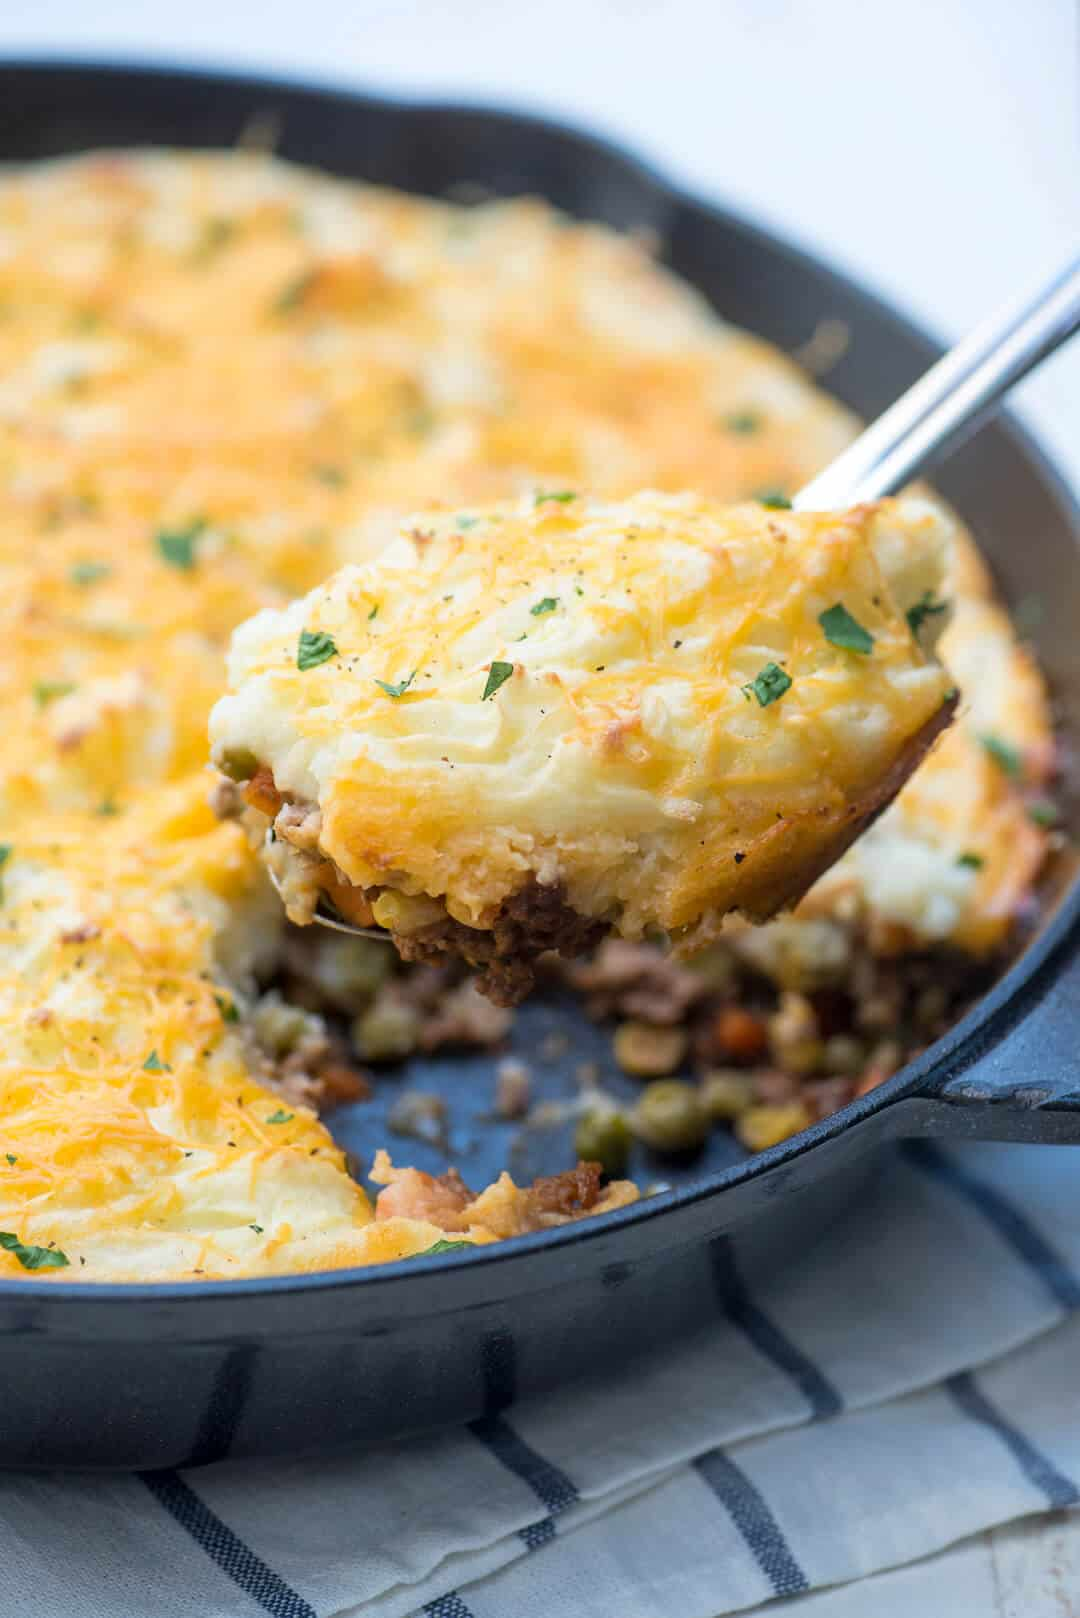 A serving spoon lifts a spoonful of the shepherd's pie from the skillet.